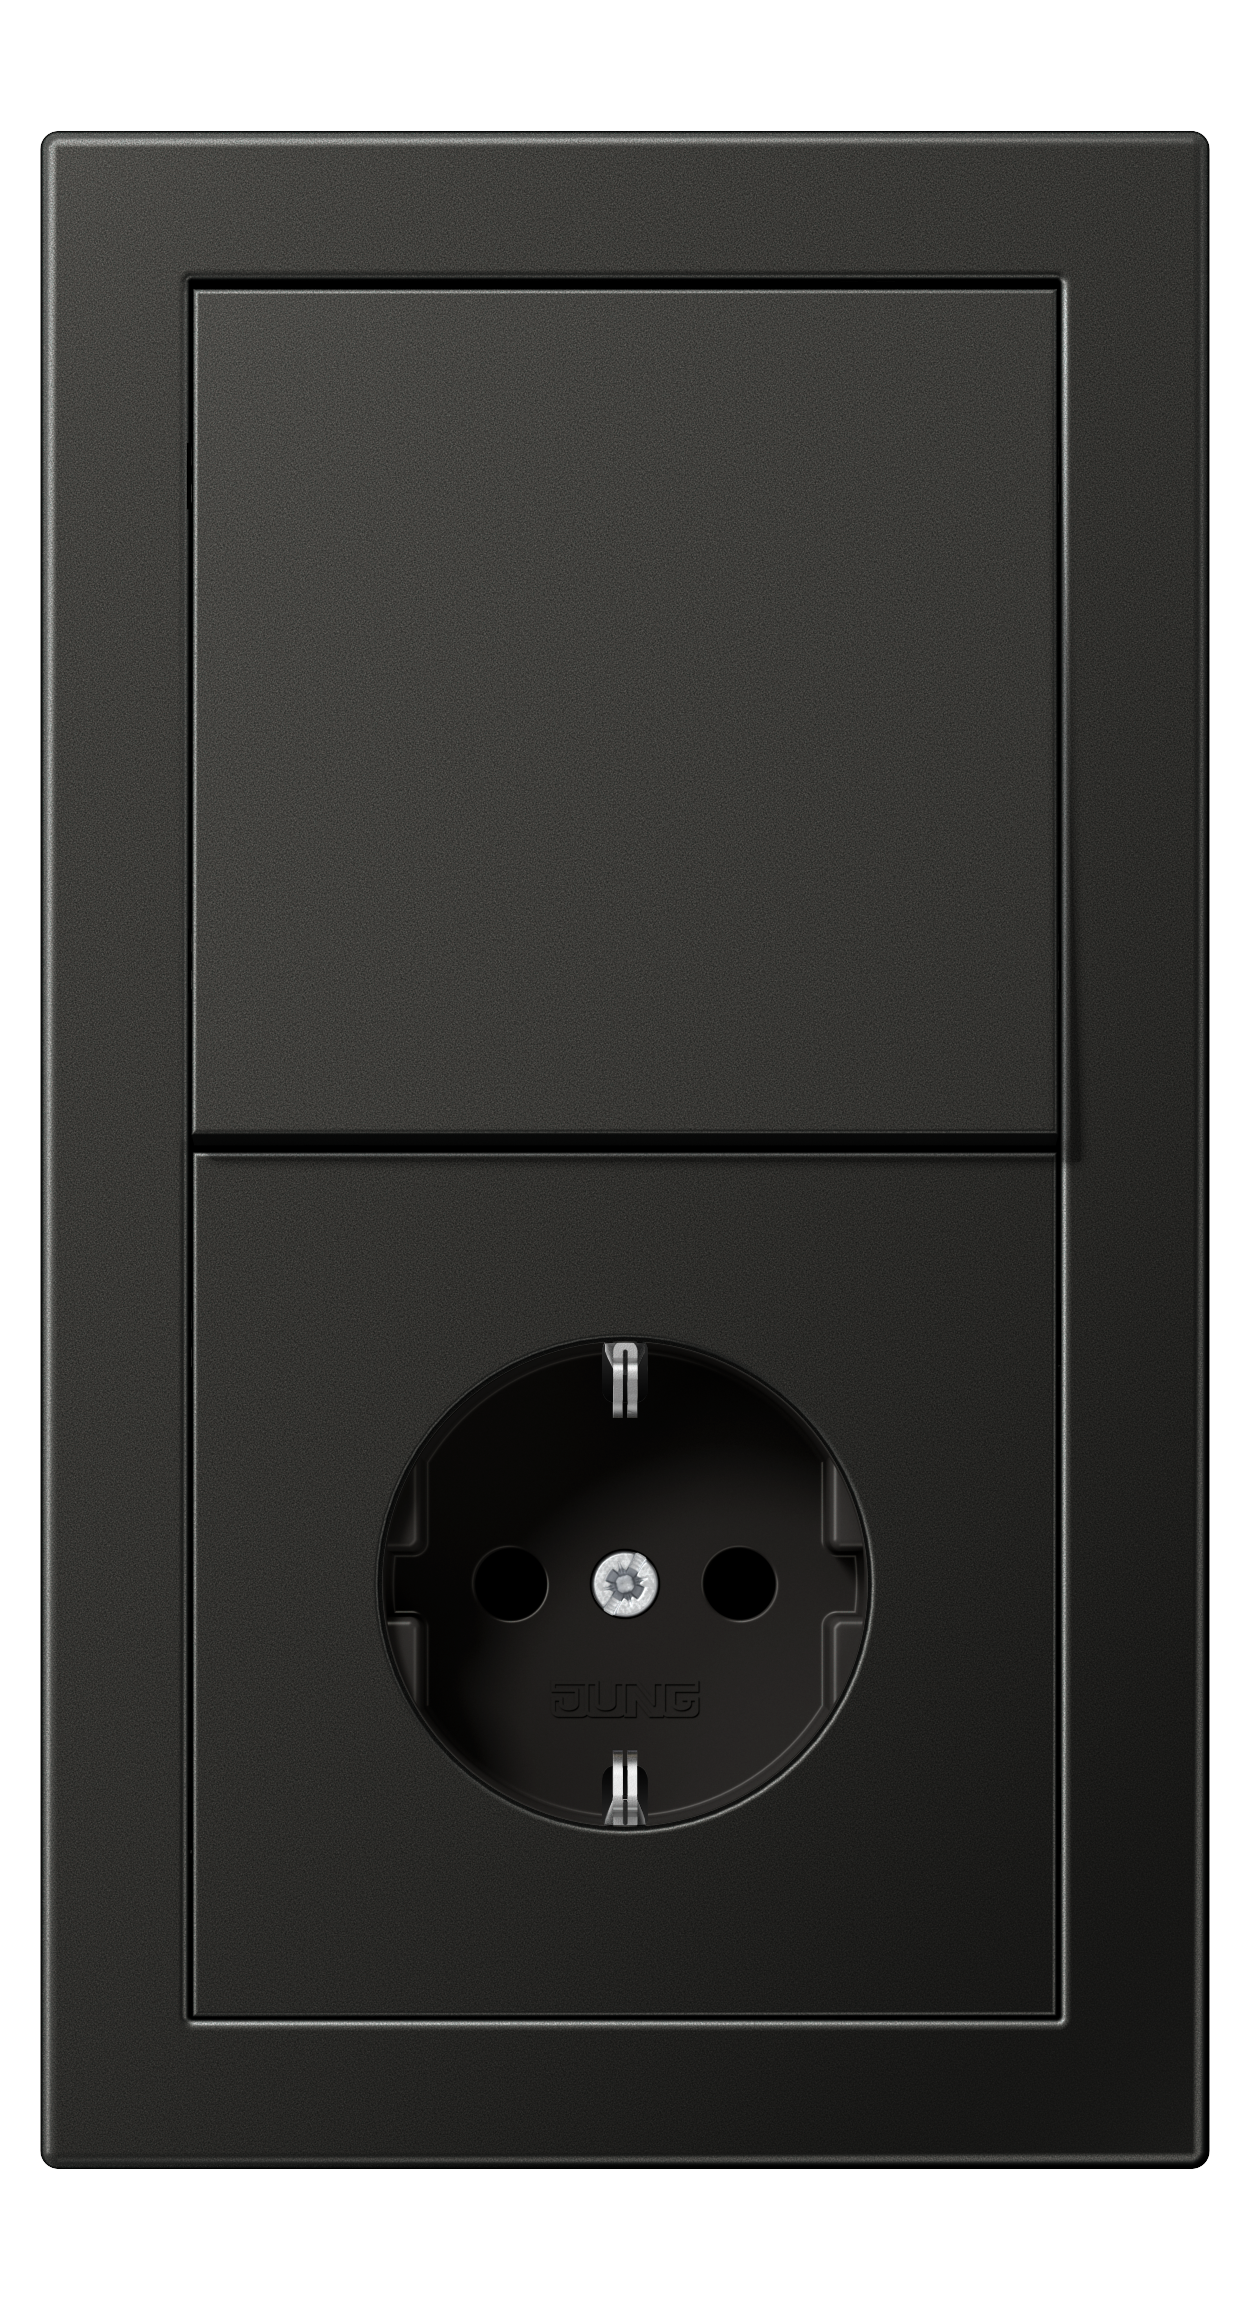 JUNG_LS_Design_anthracite_switch_socket